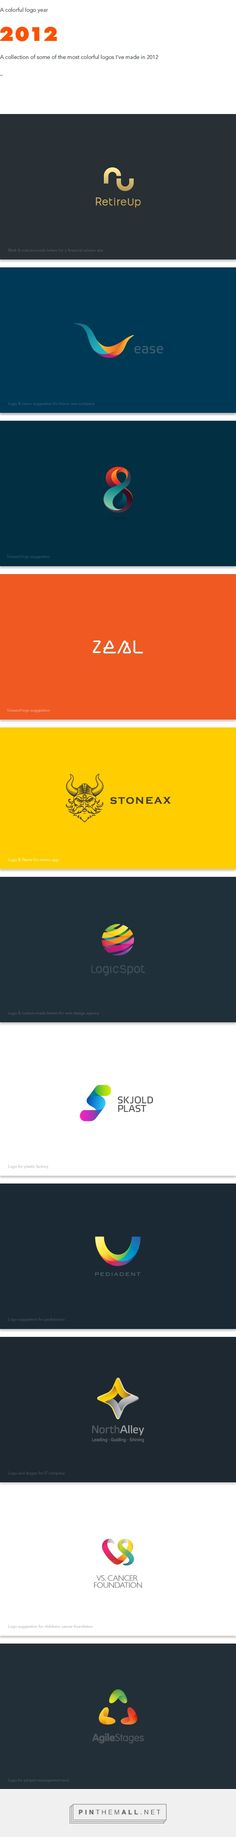 A colorful logo year 2012 on Behance - created via https://pinthemall.net